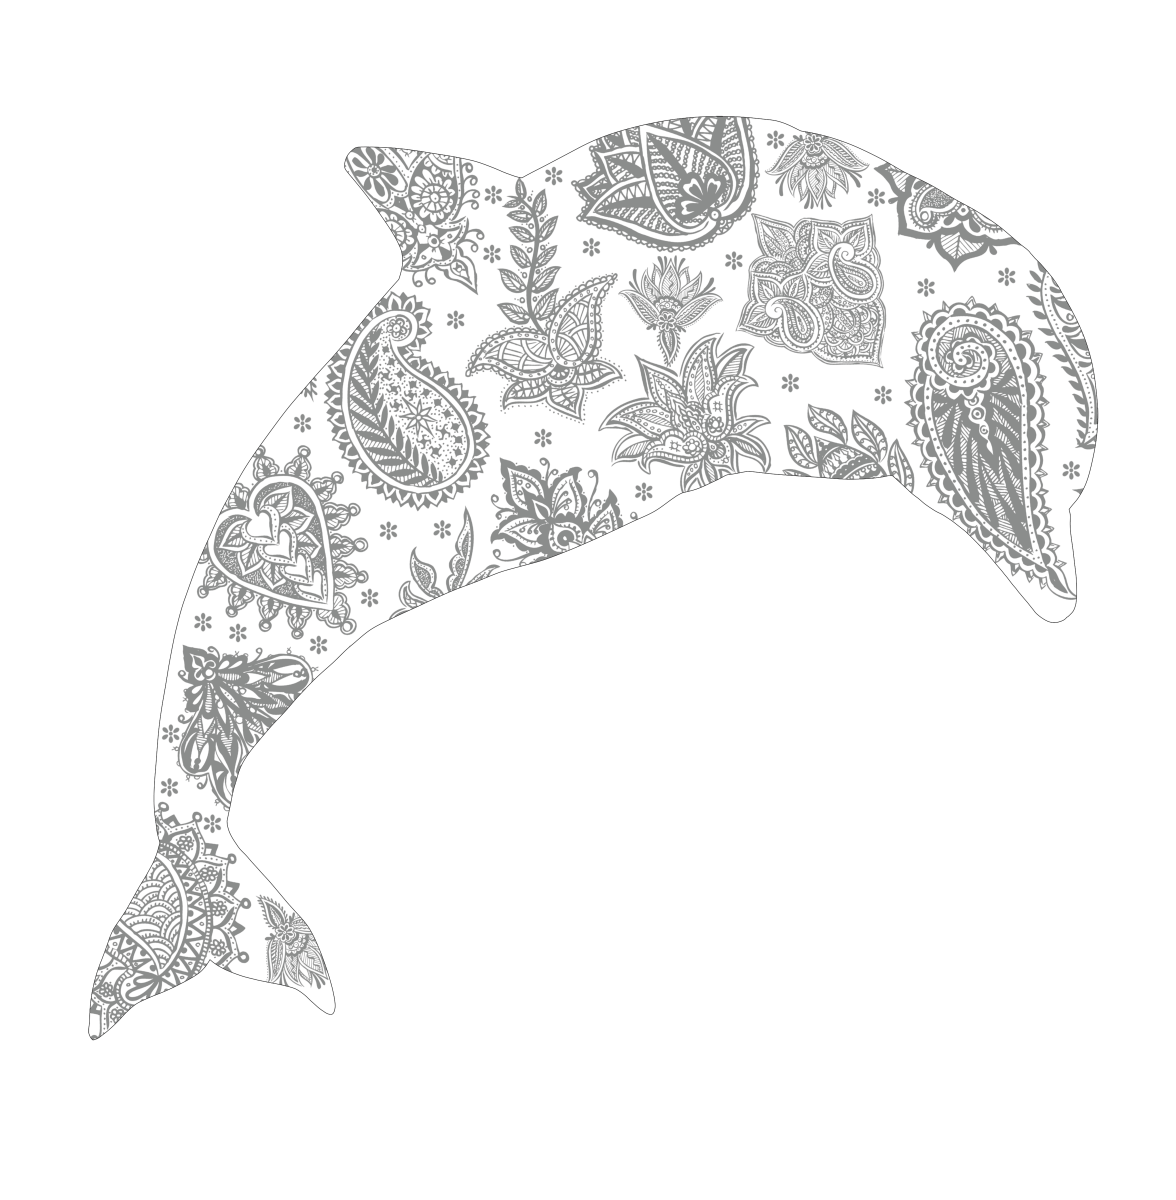 This printable adult coloring page features a dolphin sporting a floral mandala-inspired design.